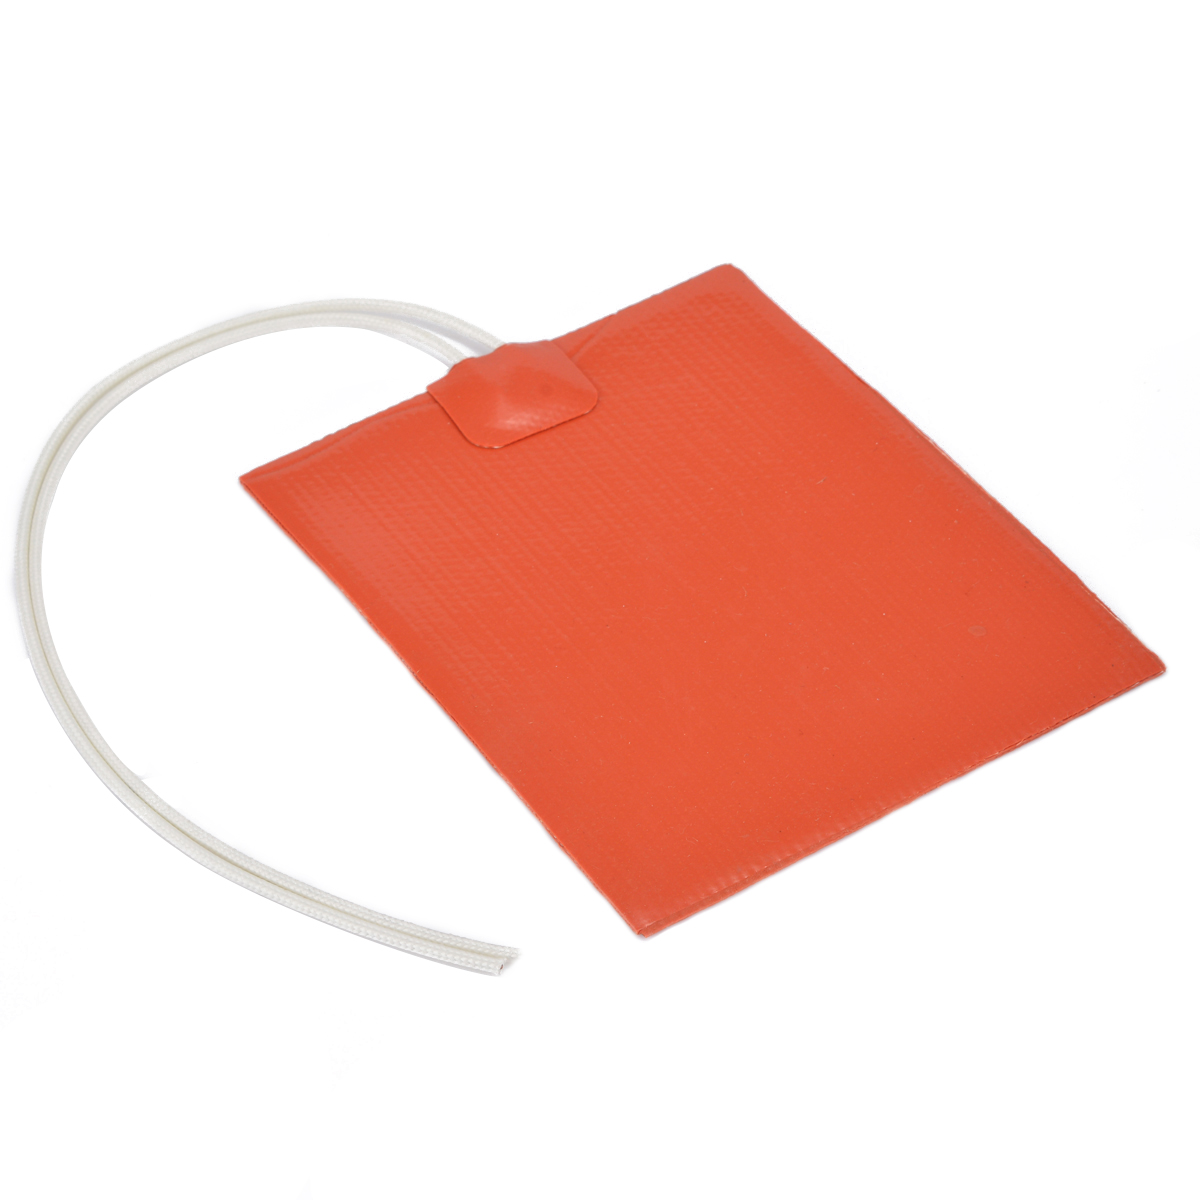 12V 12W Silicone Rubber Heating Panel Constant Temperature Heater Panel Plate 100*120mm For Heating Tool